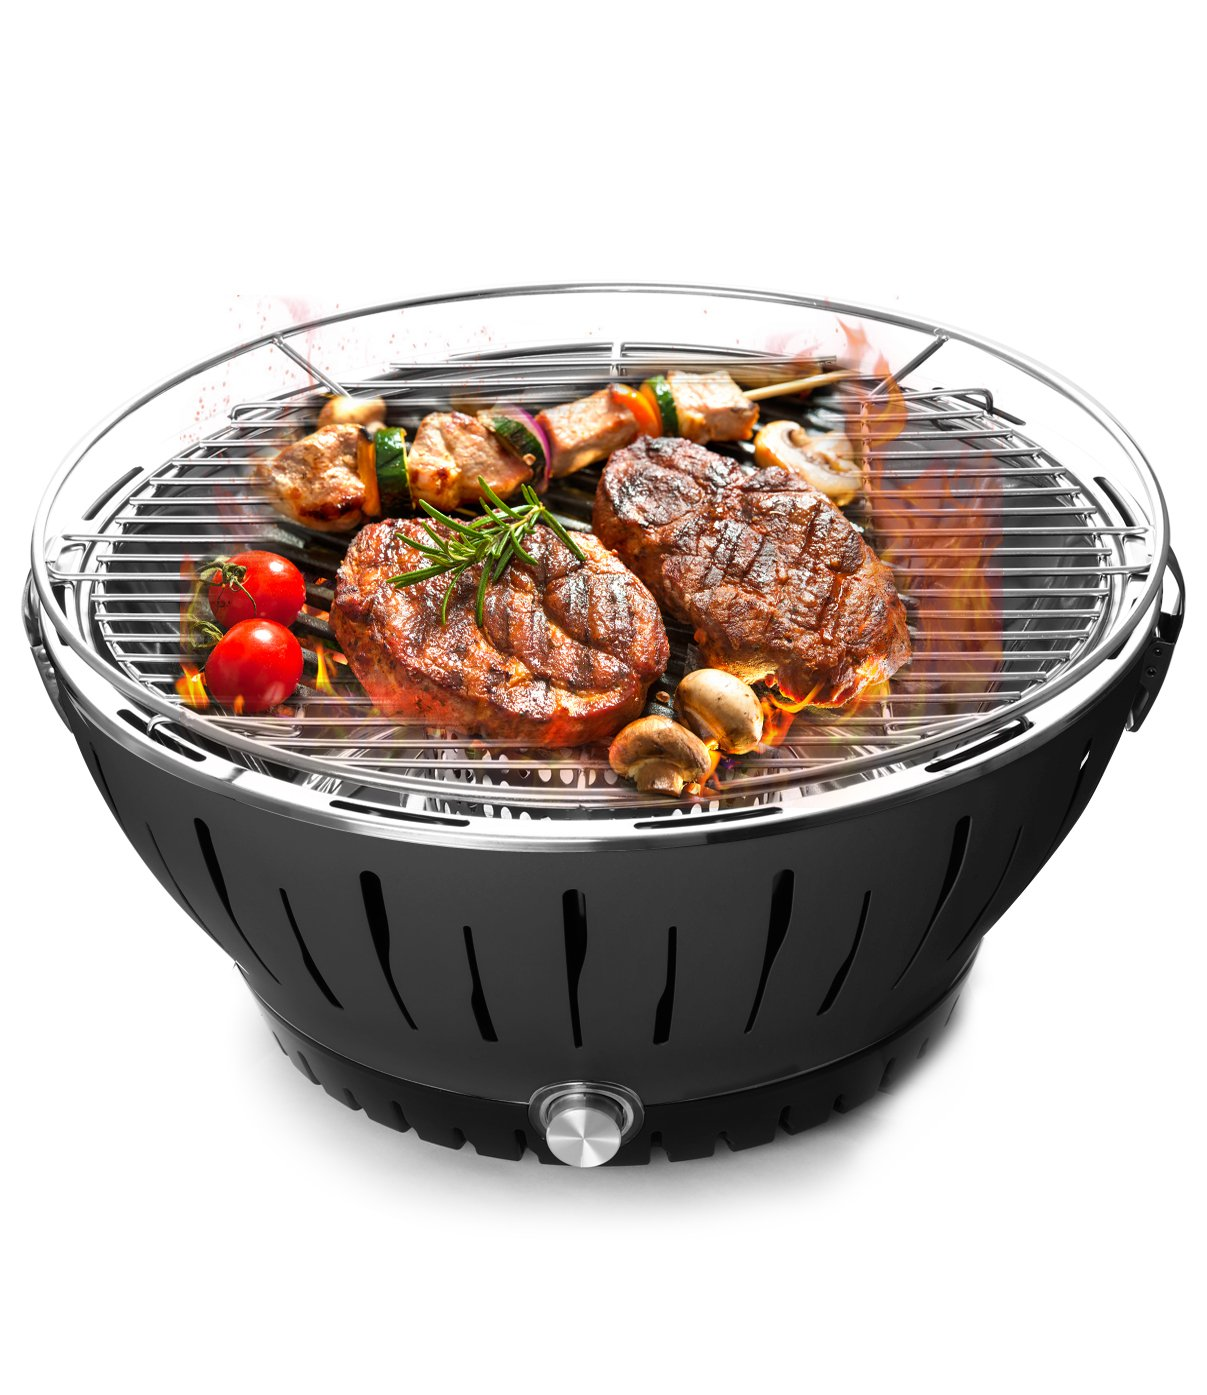 BOLUX Charcoal Barbecue Grill Lotus Outdoor Portable Quick Heat Smokeless BBQ with Transport Bag,Black Bolin